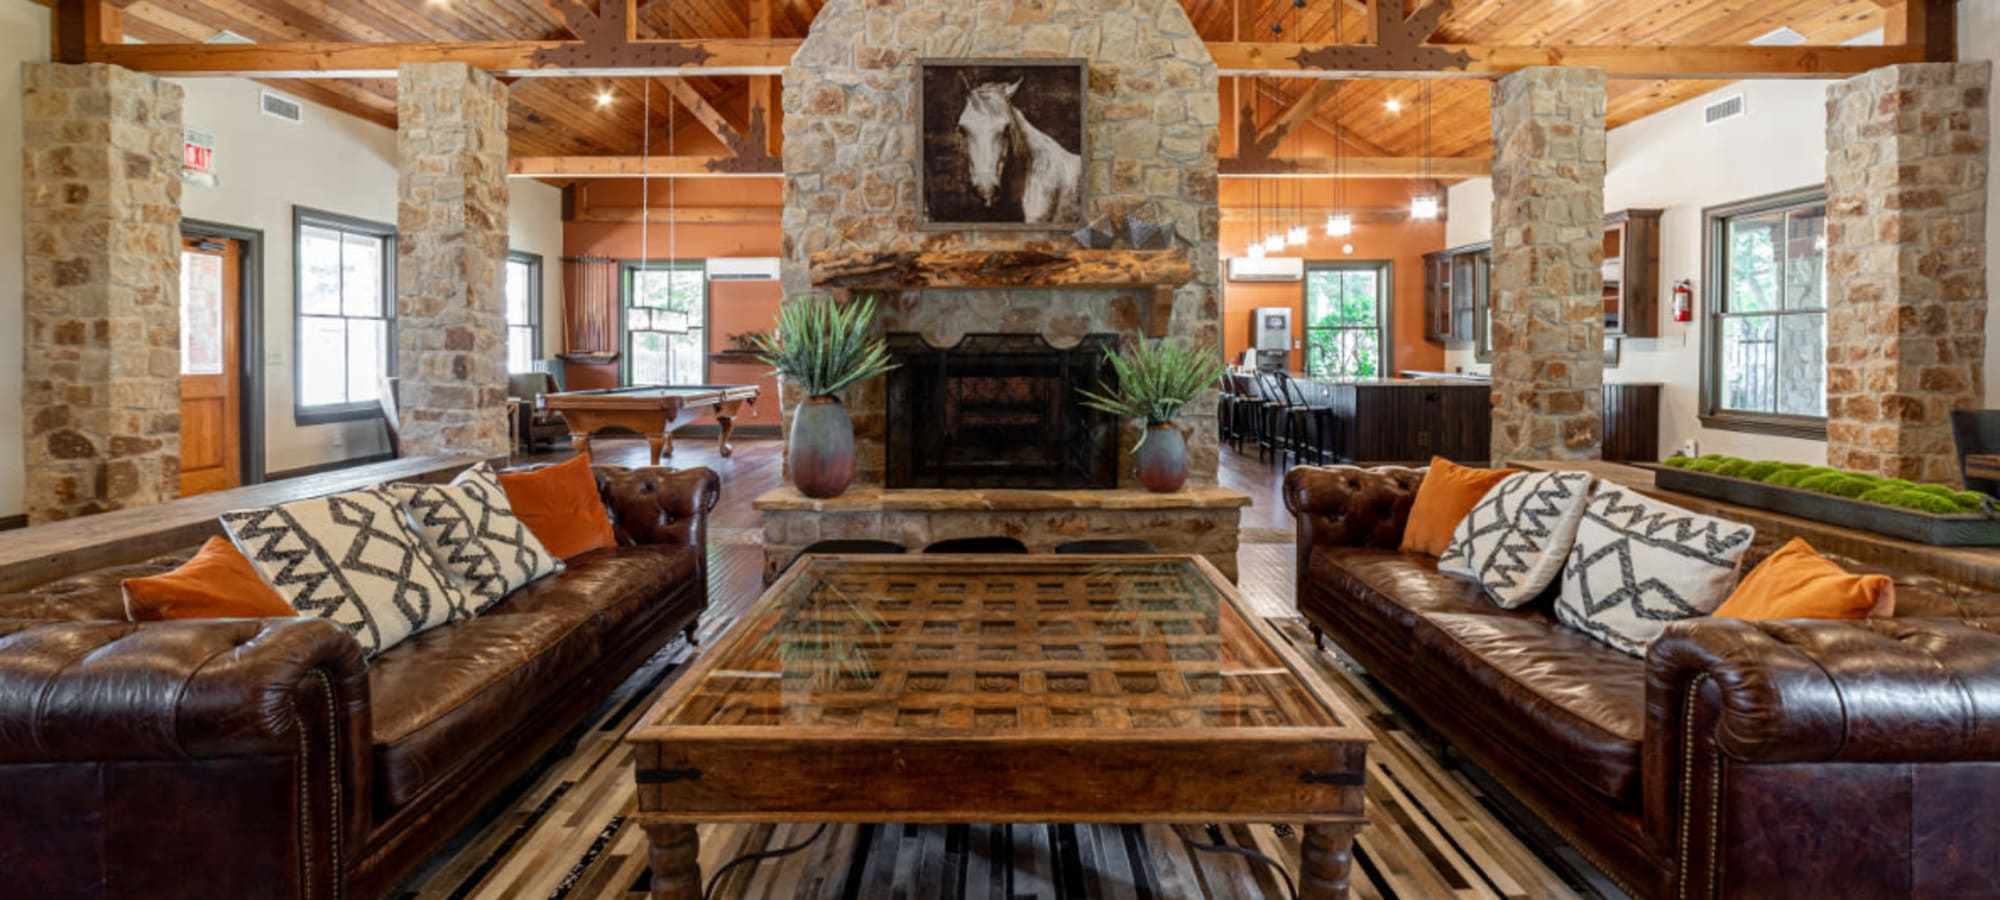 Gallery of photos for Marquis at Bellaire Ranch in Fort Worth, Texas